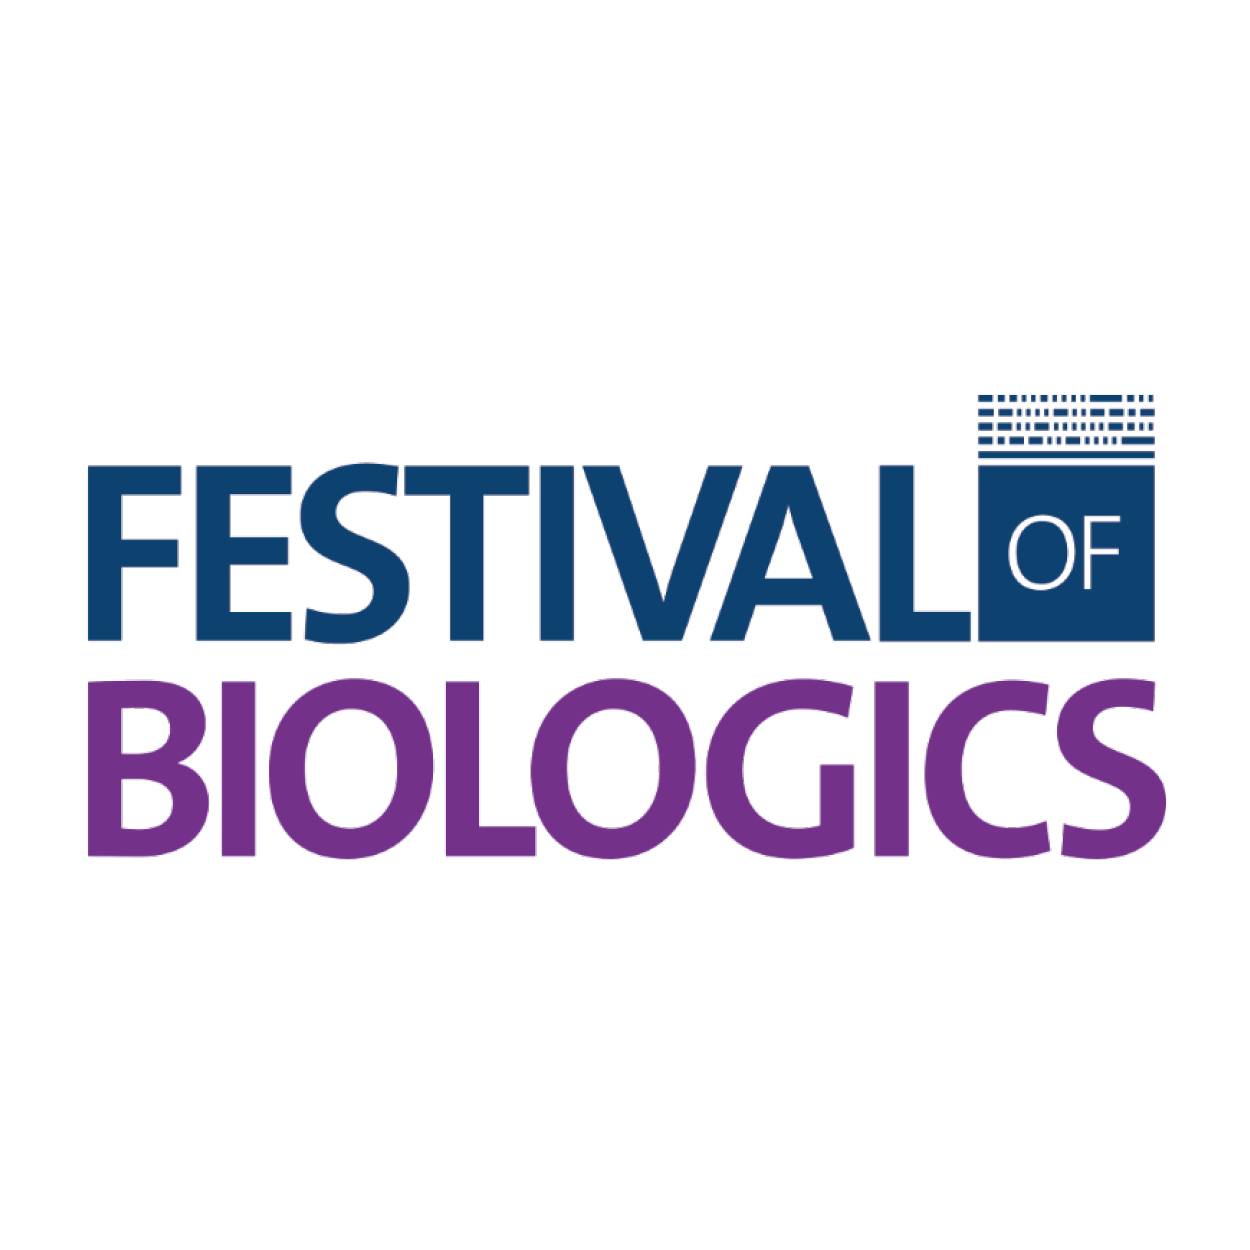 Festival of biologics logo